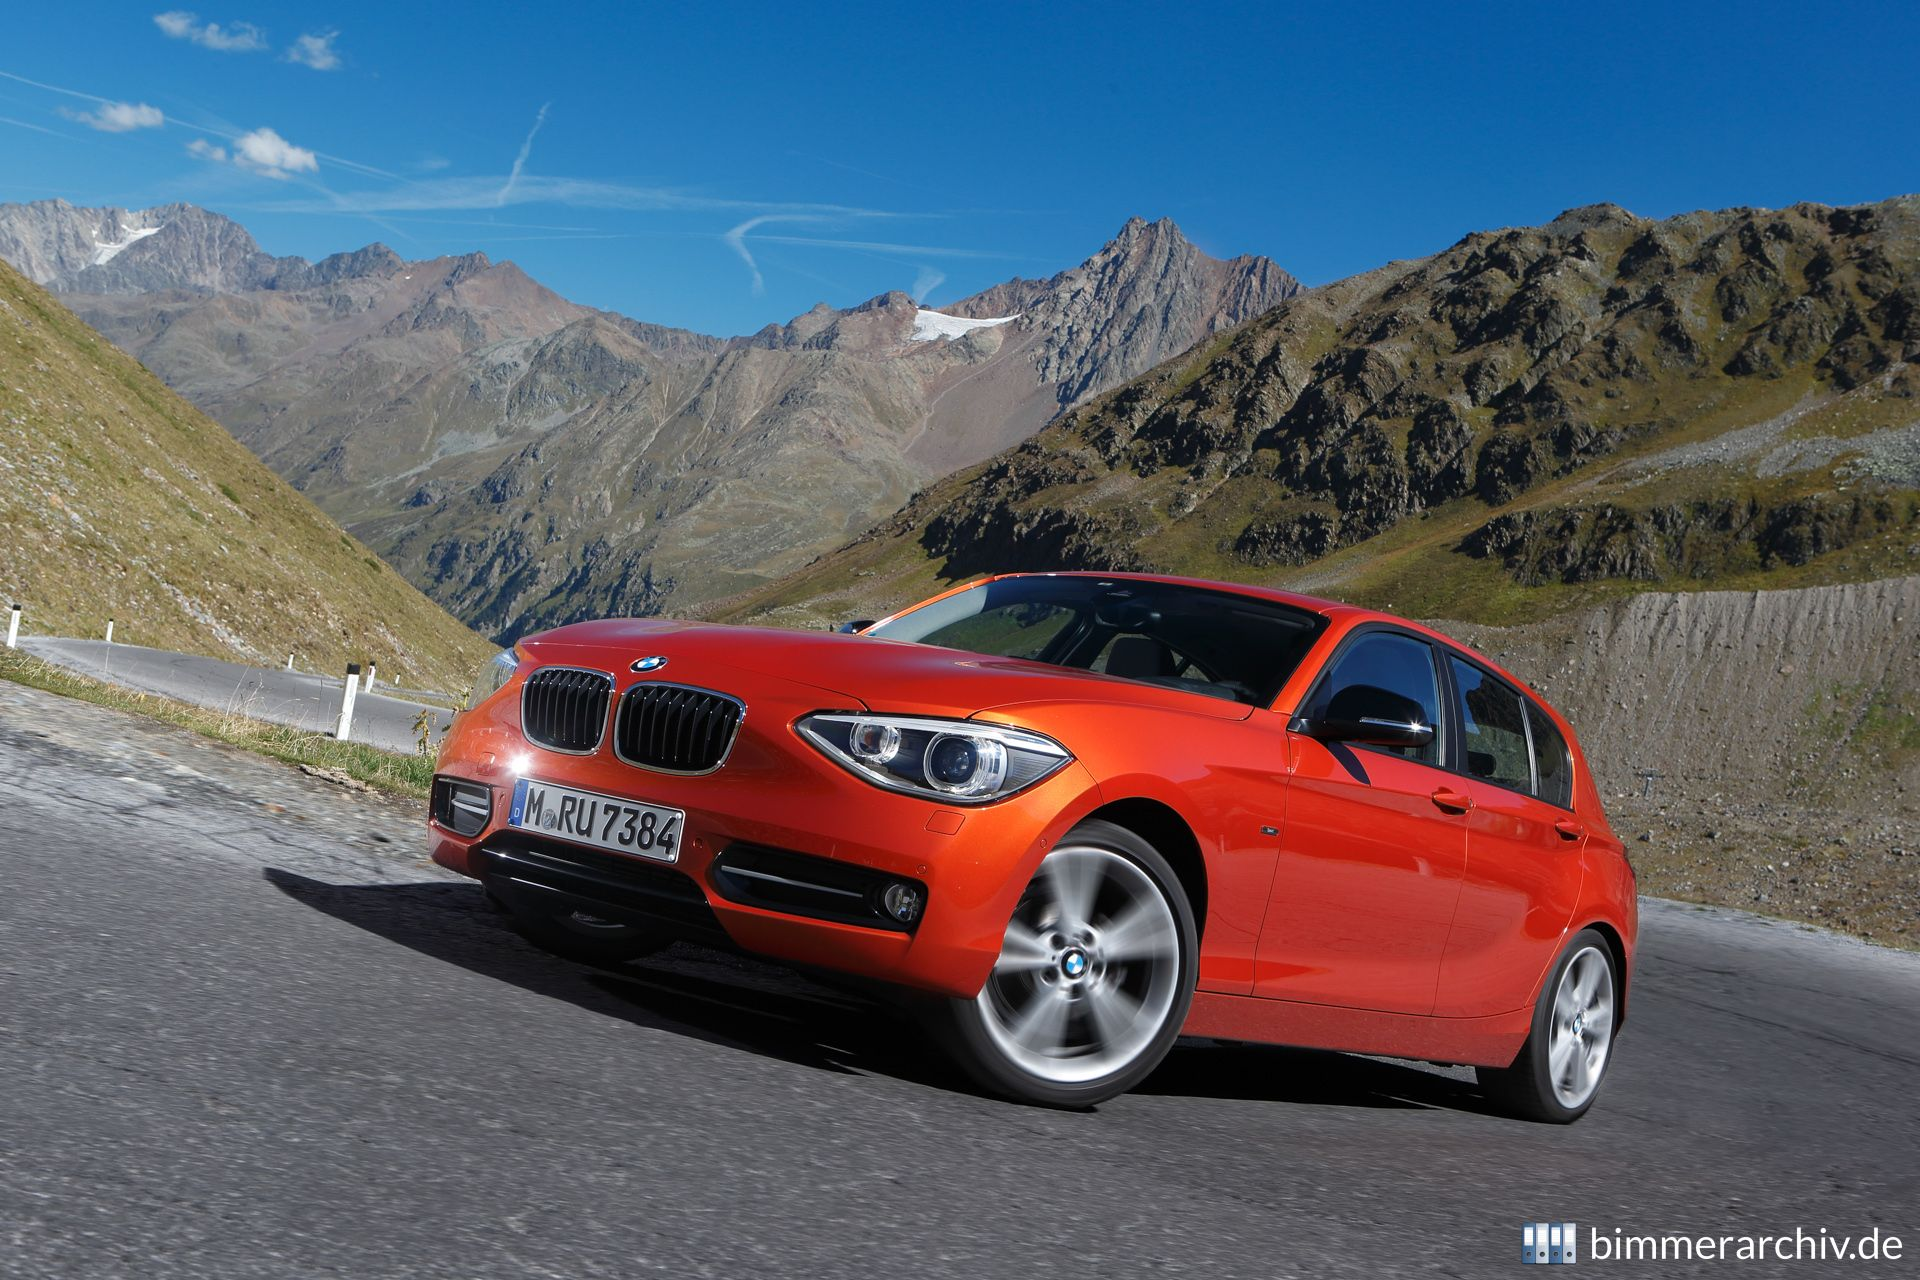 BMW 1 Series with xDrive